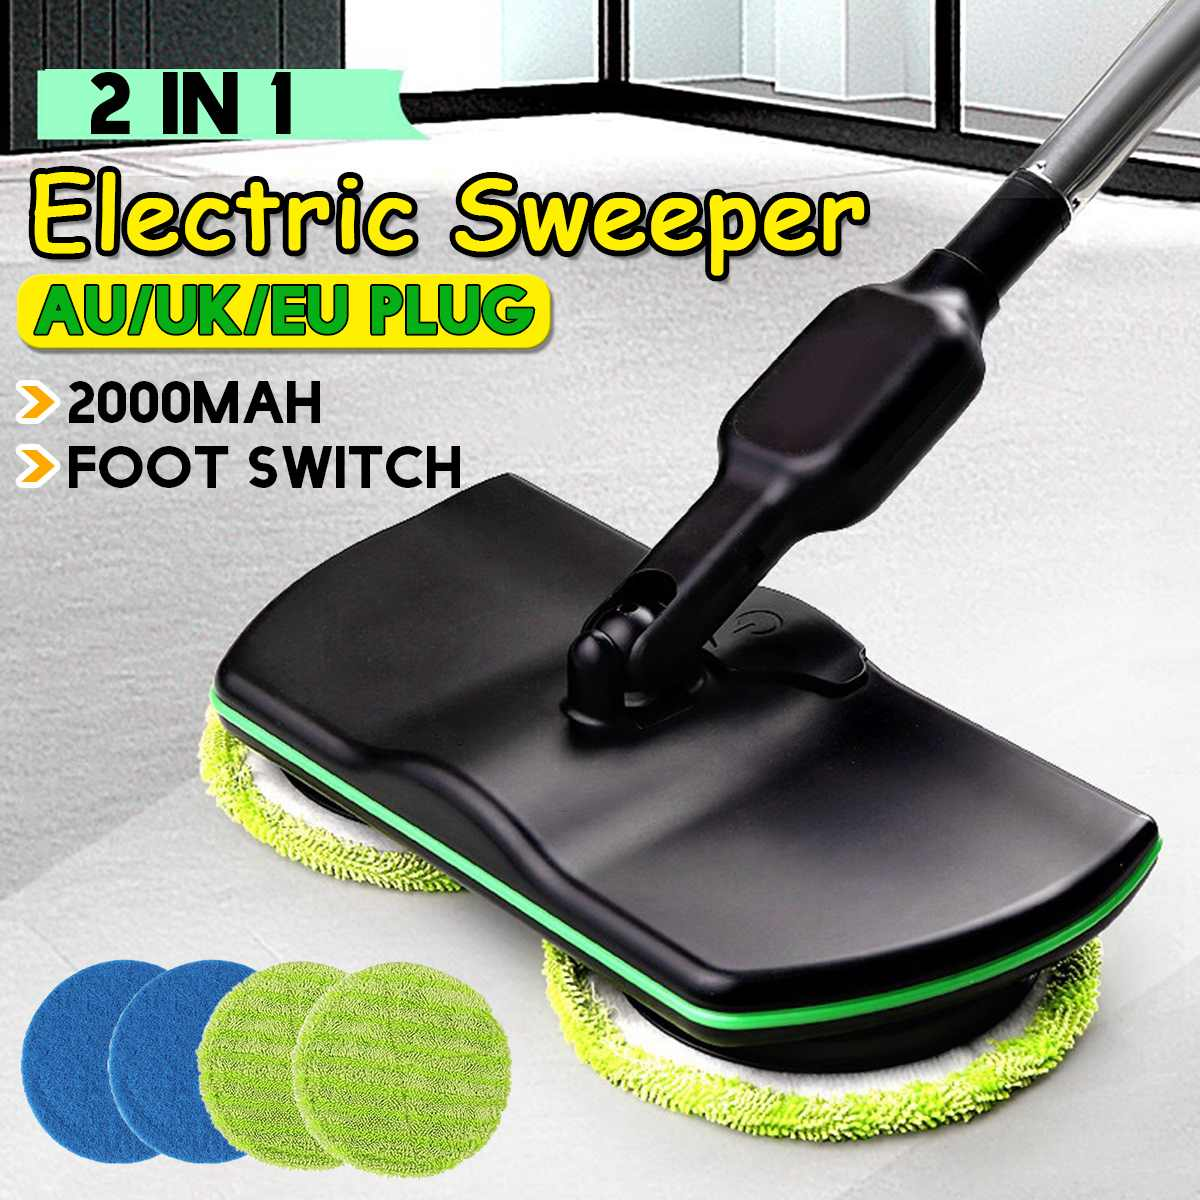 2 in 1 Rechargeable Electric Rotary Mop 360 Rotation Cordless Floor Cleaner Scrubber Polisher Microfiber Cleaning Mop for Home